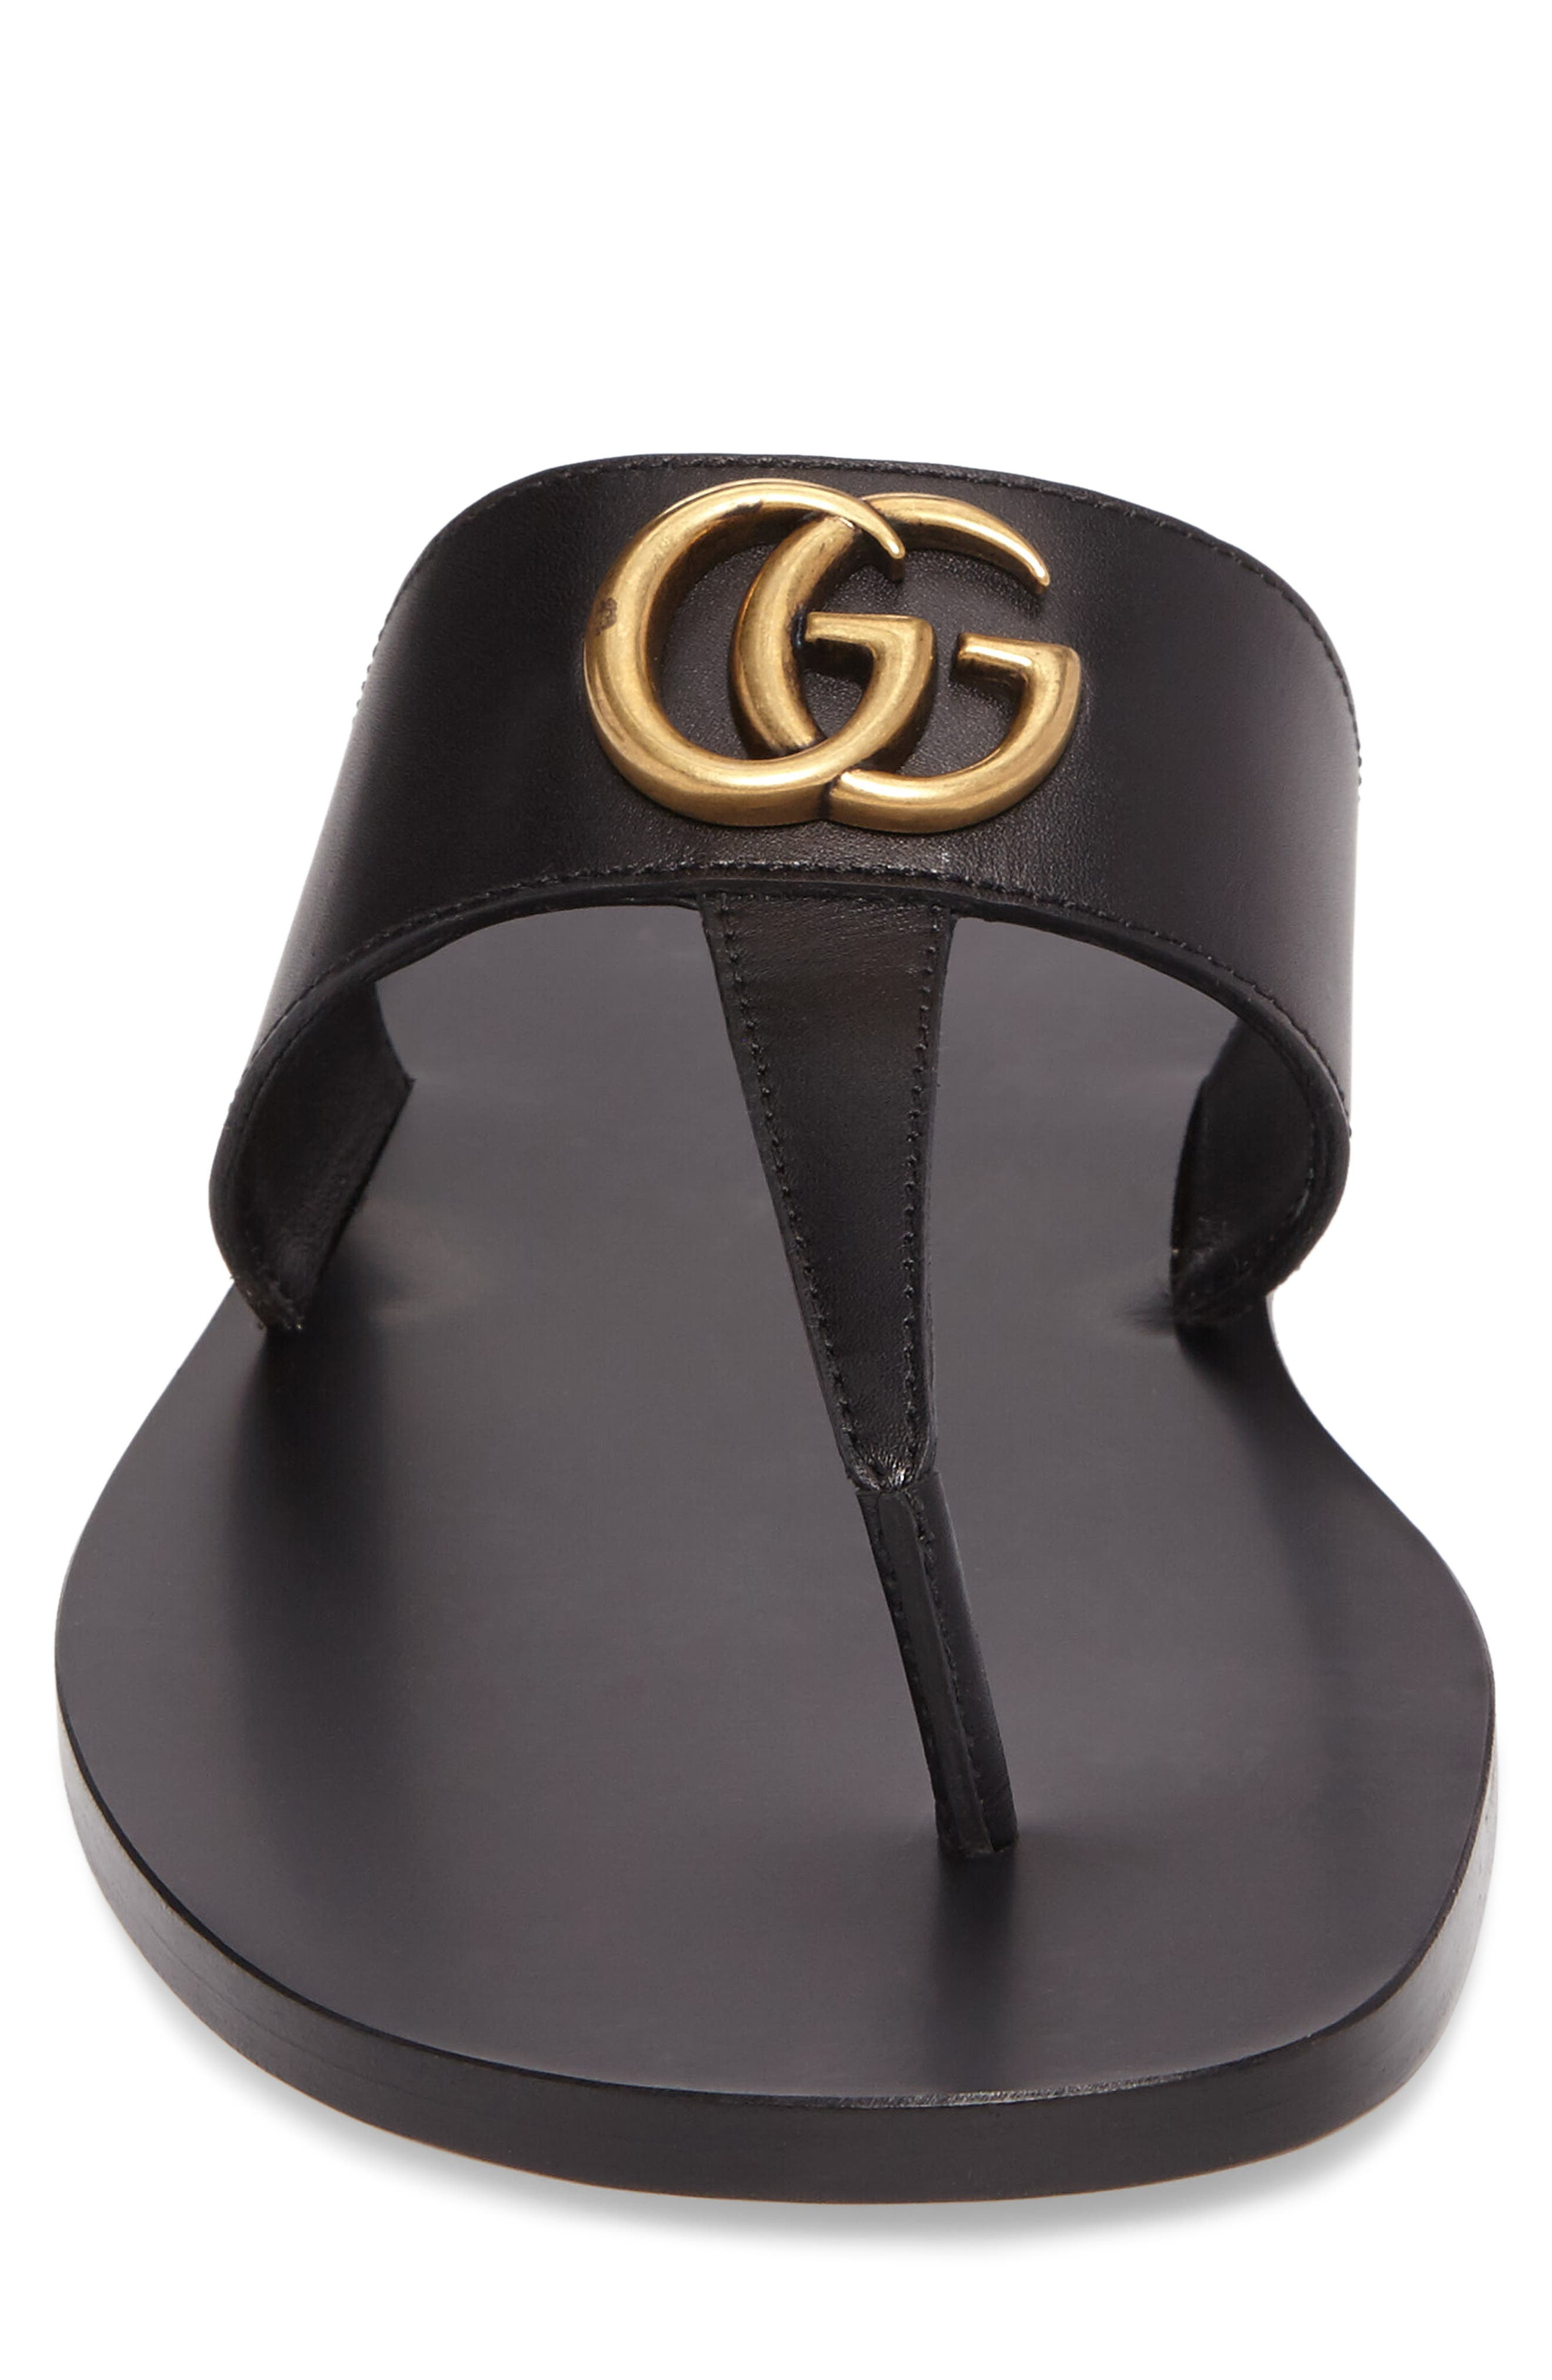 GUCCI, Marmont Double G Leather Thong Sandal, Alternate thumbnail 4, color, BLACK/ GOLD